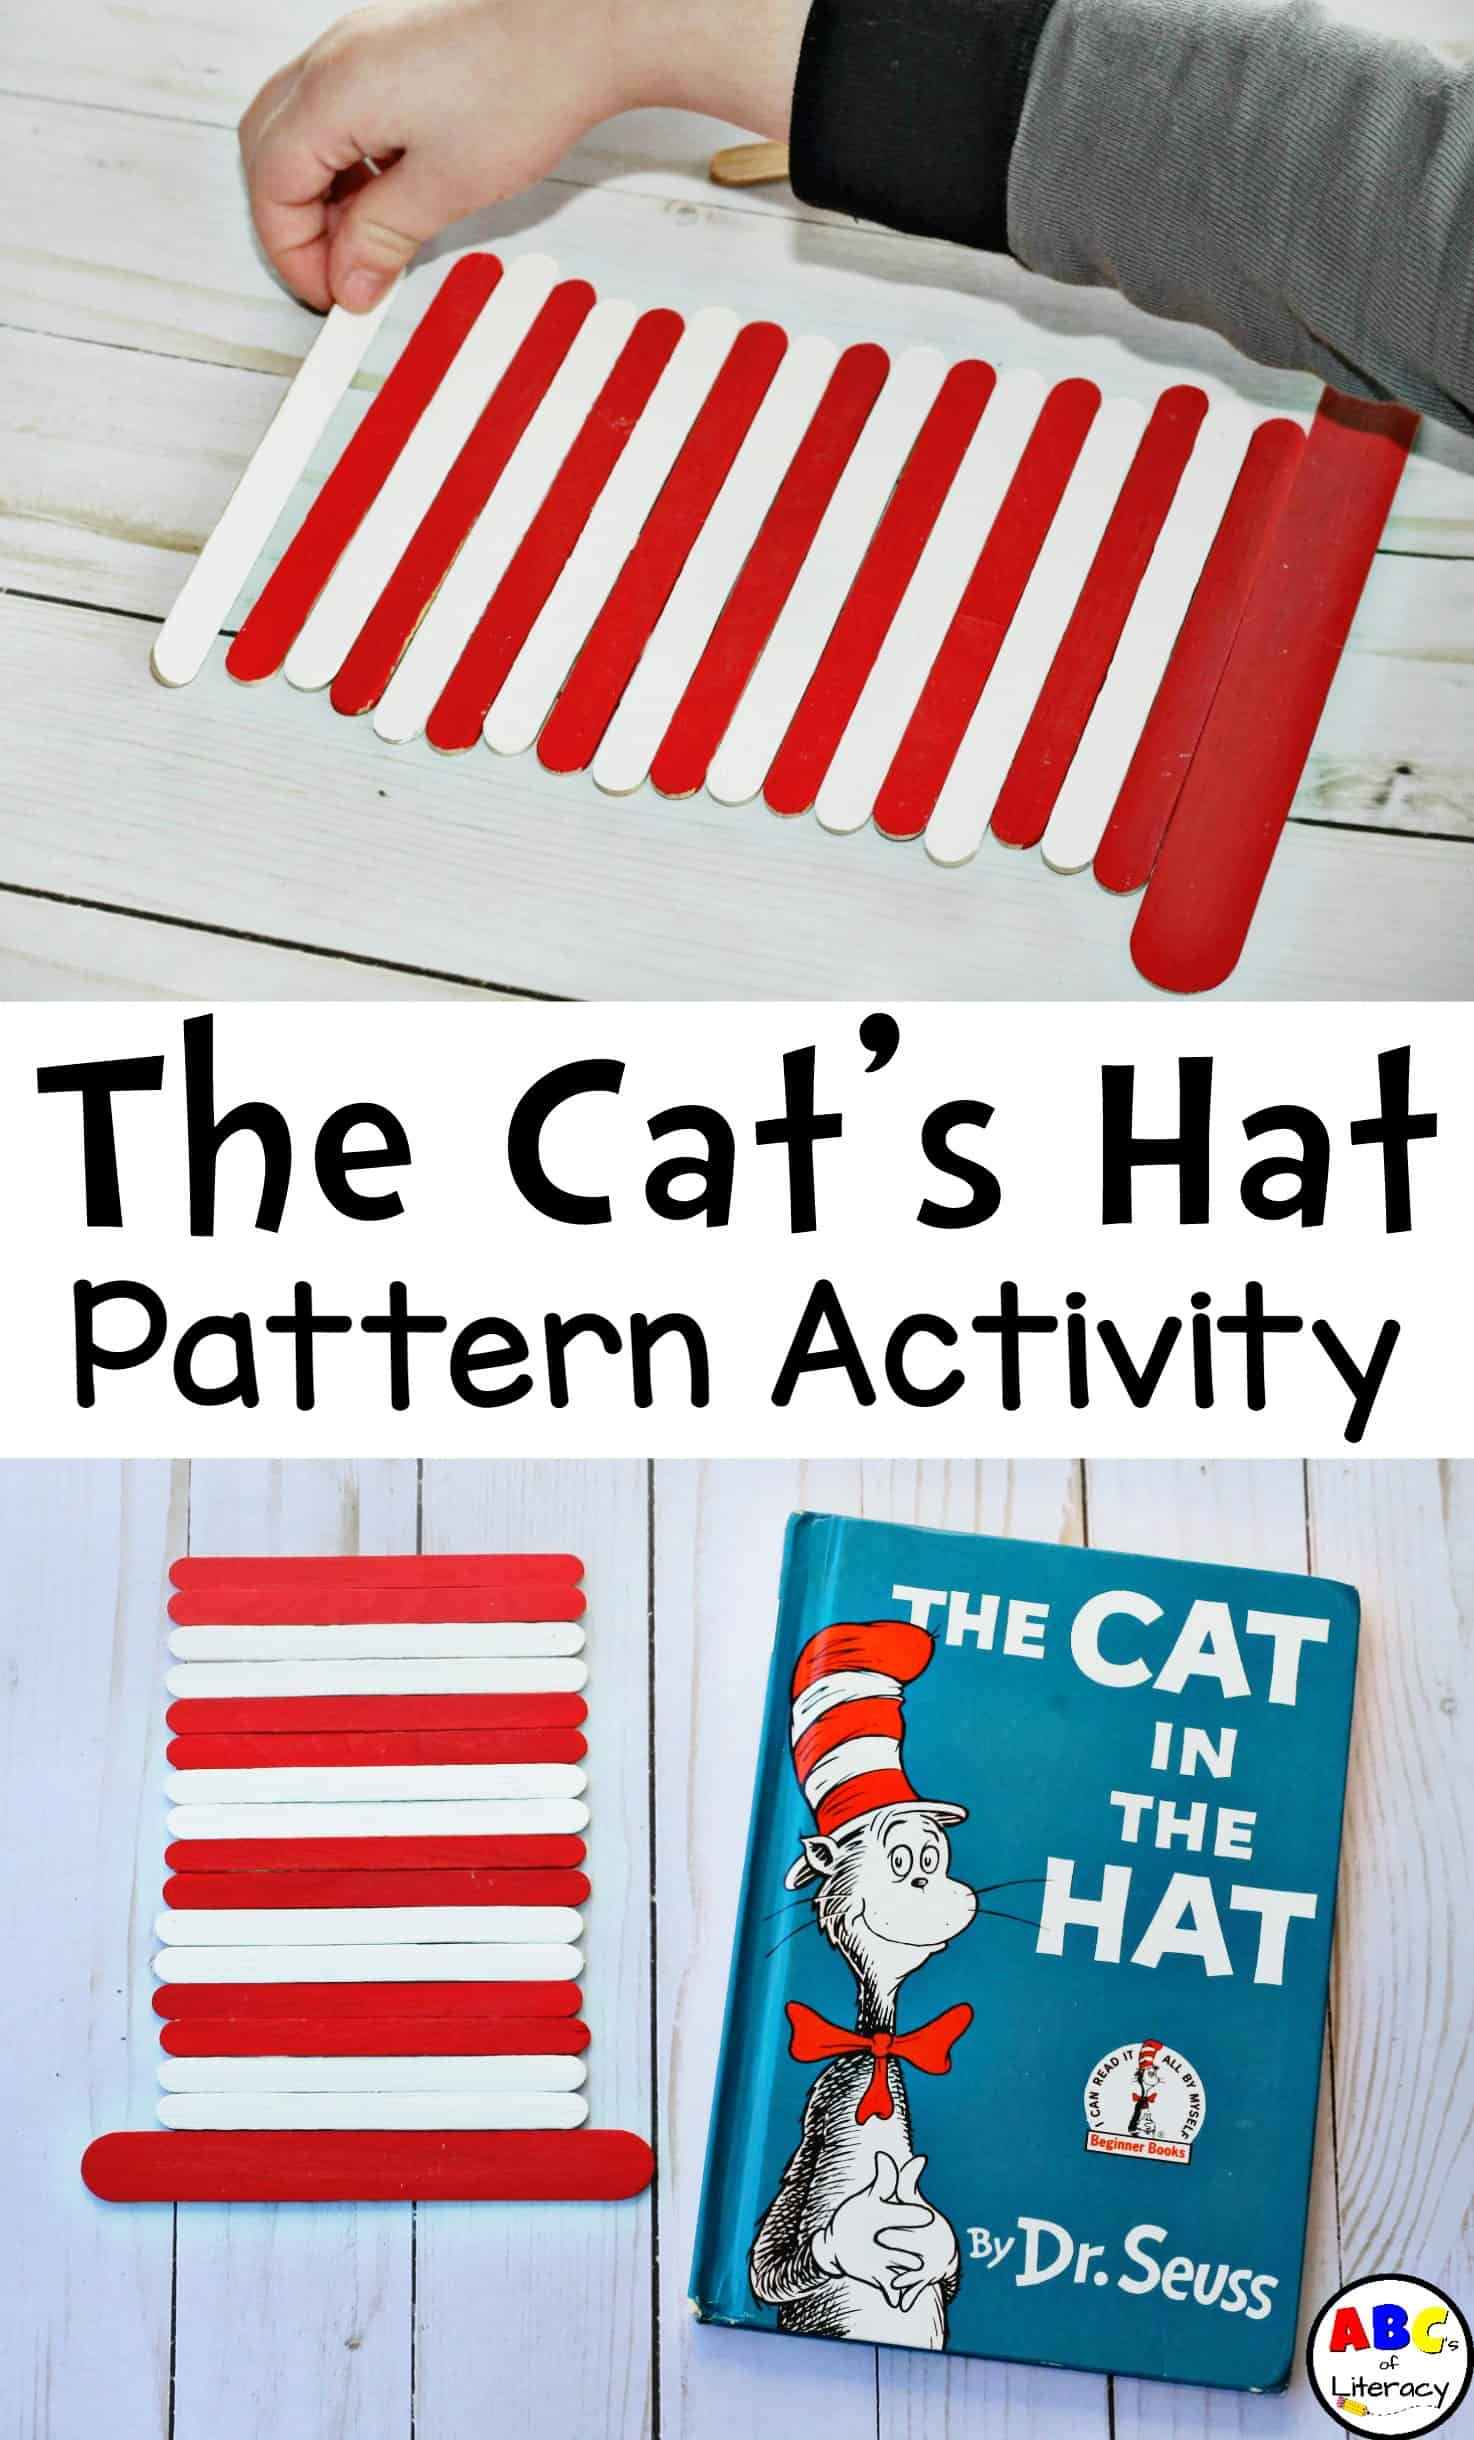 The Cat In The Hat Pattern Activity, The Cat's Hat Pattern Activity, Making Patterns, Preschool Activity, Preschool Center